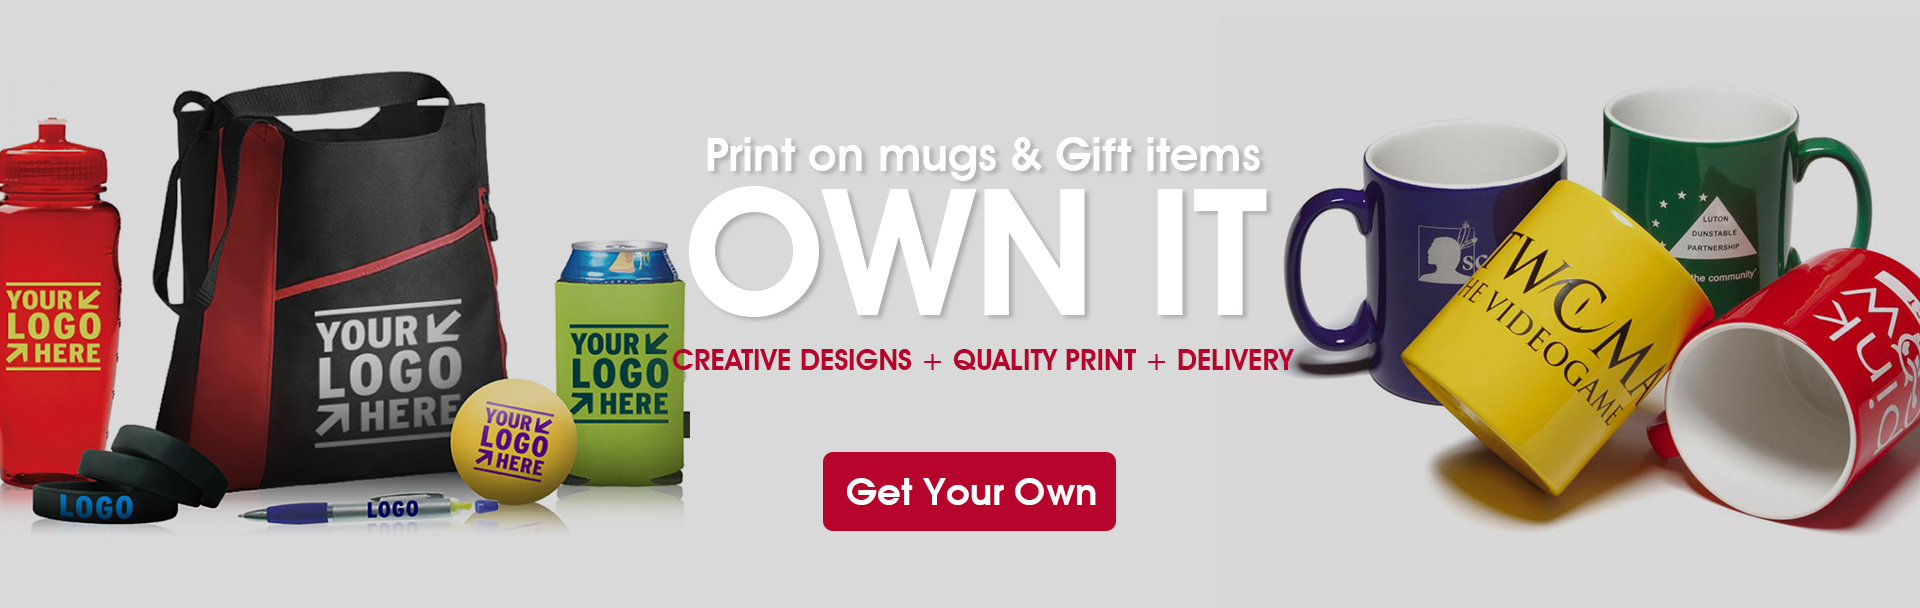 Corporate Gifts Printing in uttam nagar INDIA